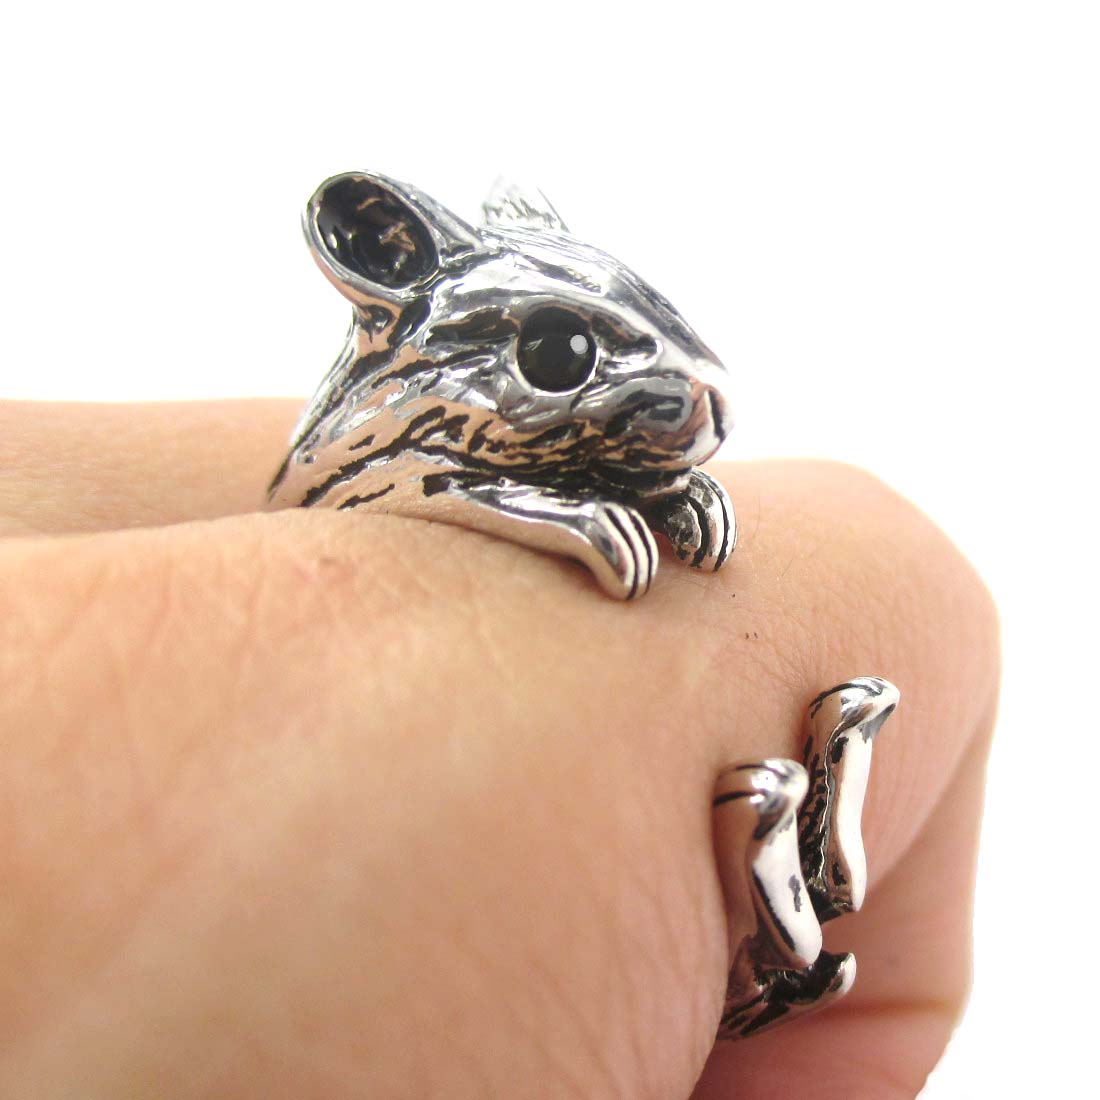 3D Miniature Guinea Pig Hamster Animal Wrap Hug Ring in Shiny Silver - US Size 4 to 8.5